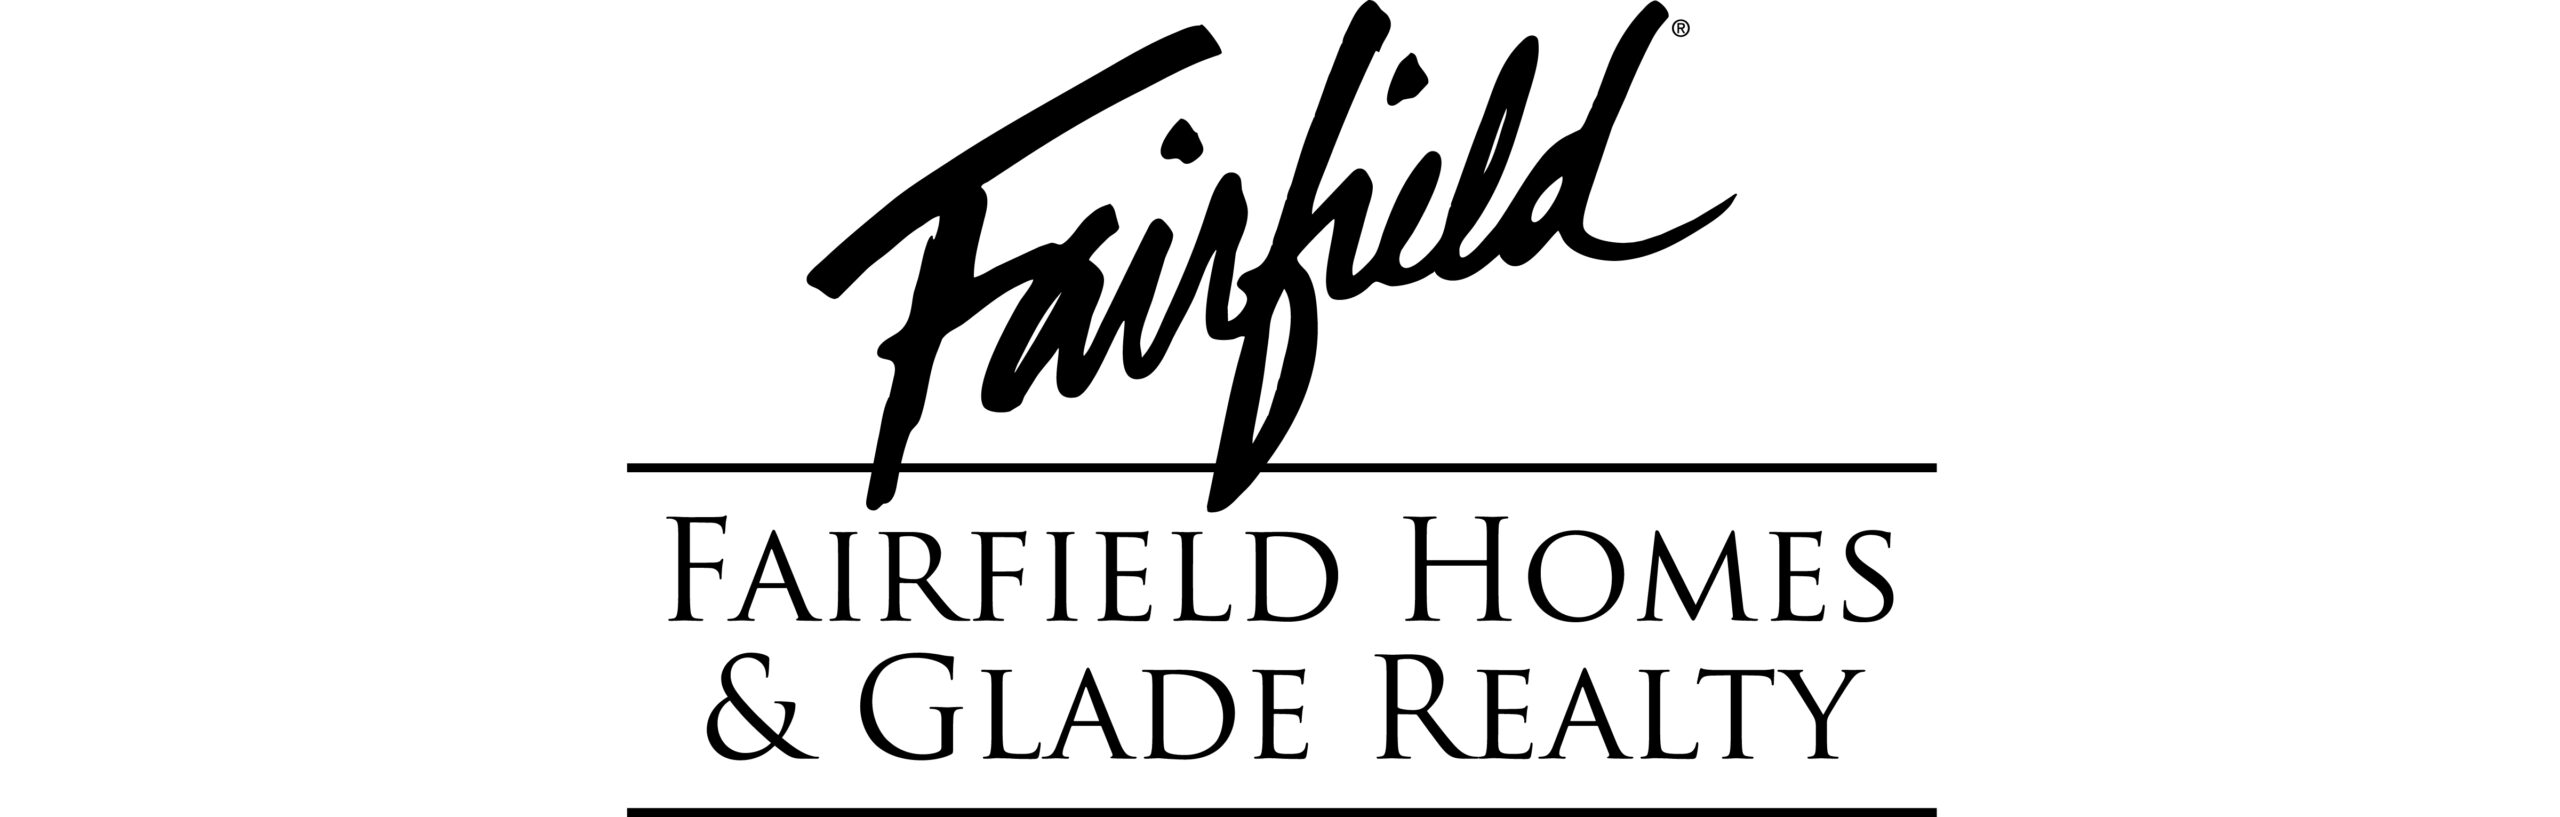 Fairfield Homes & Glade Realty 2 lines